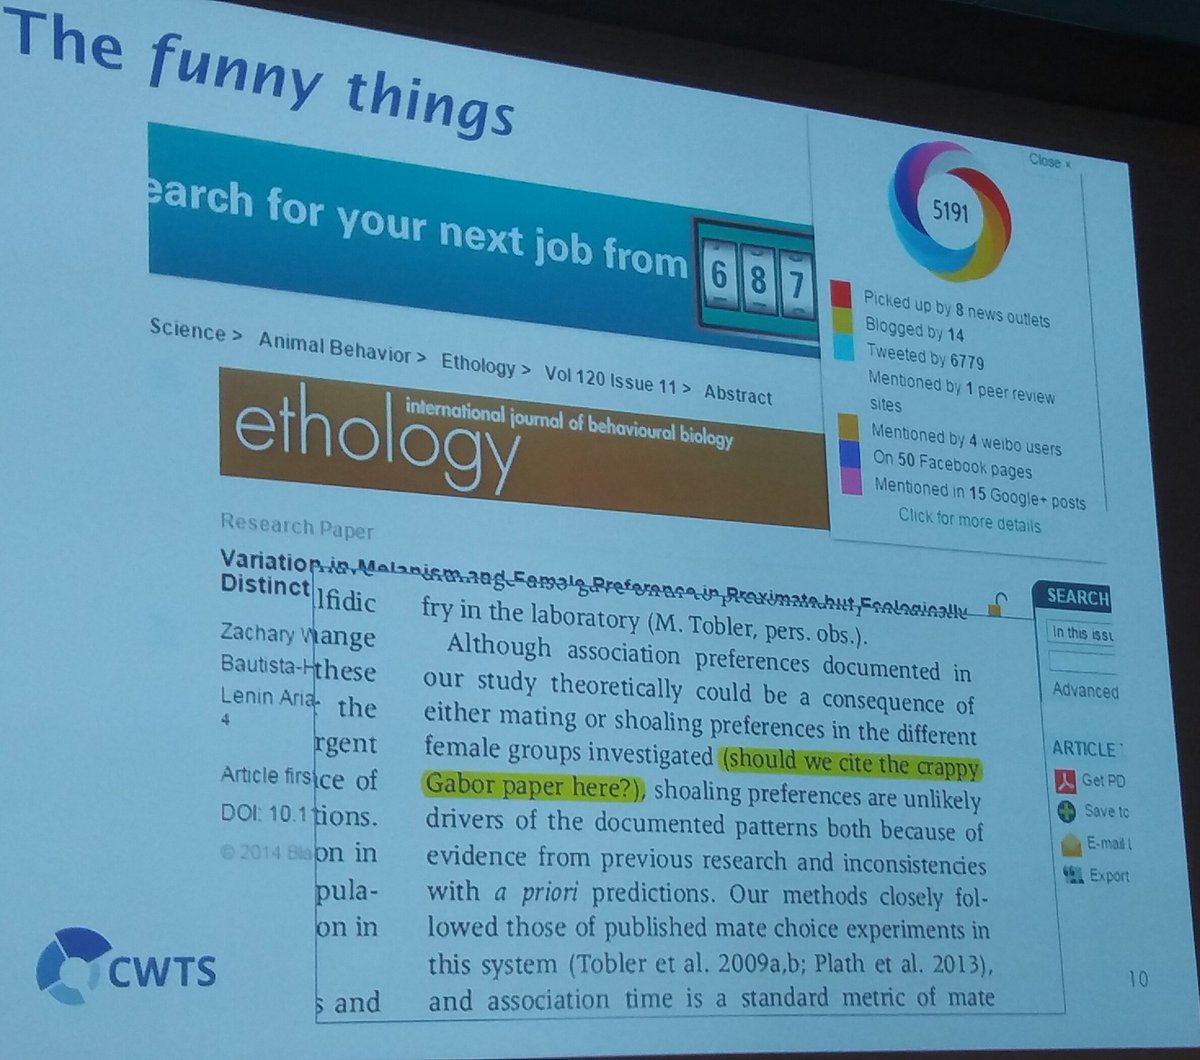 #oai10 Costas: does it count as a citation? #altmetrics #openscience <br>http://pic.twitter.com/4LGok87wvU